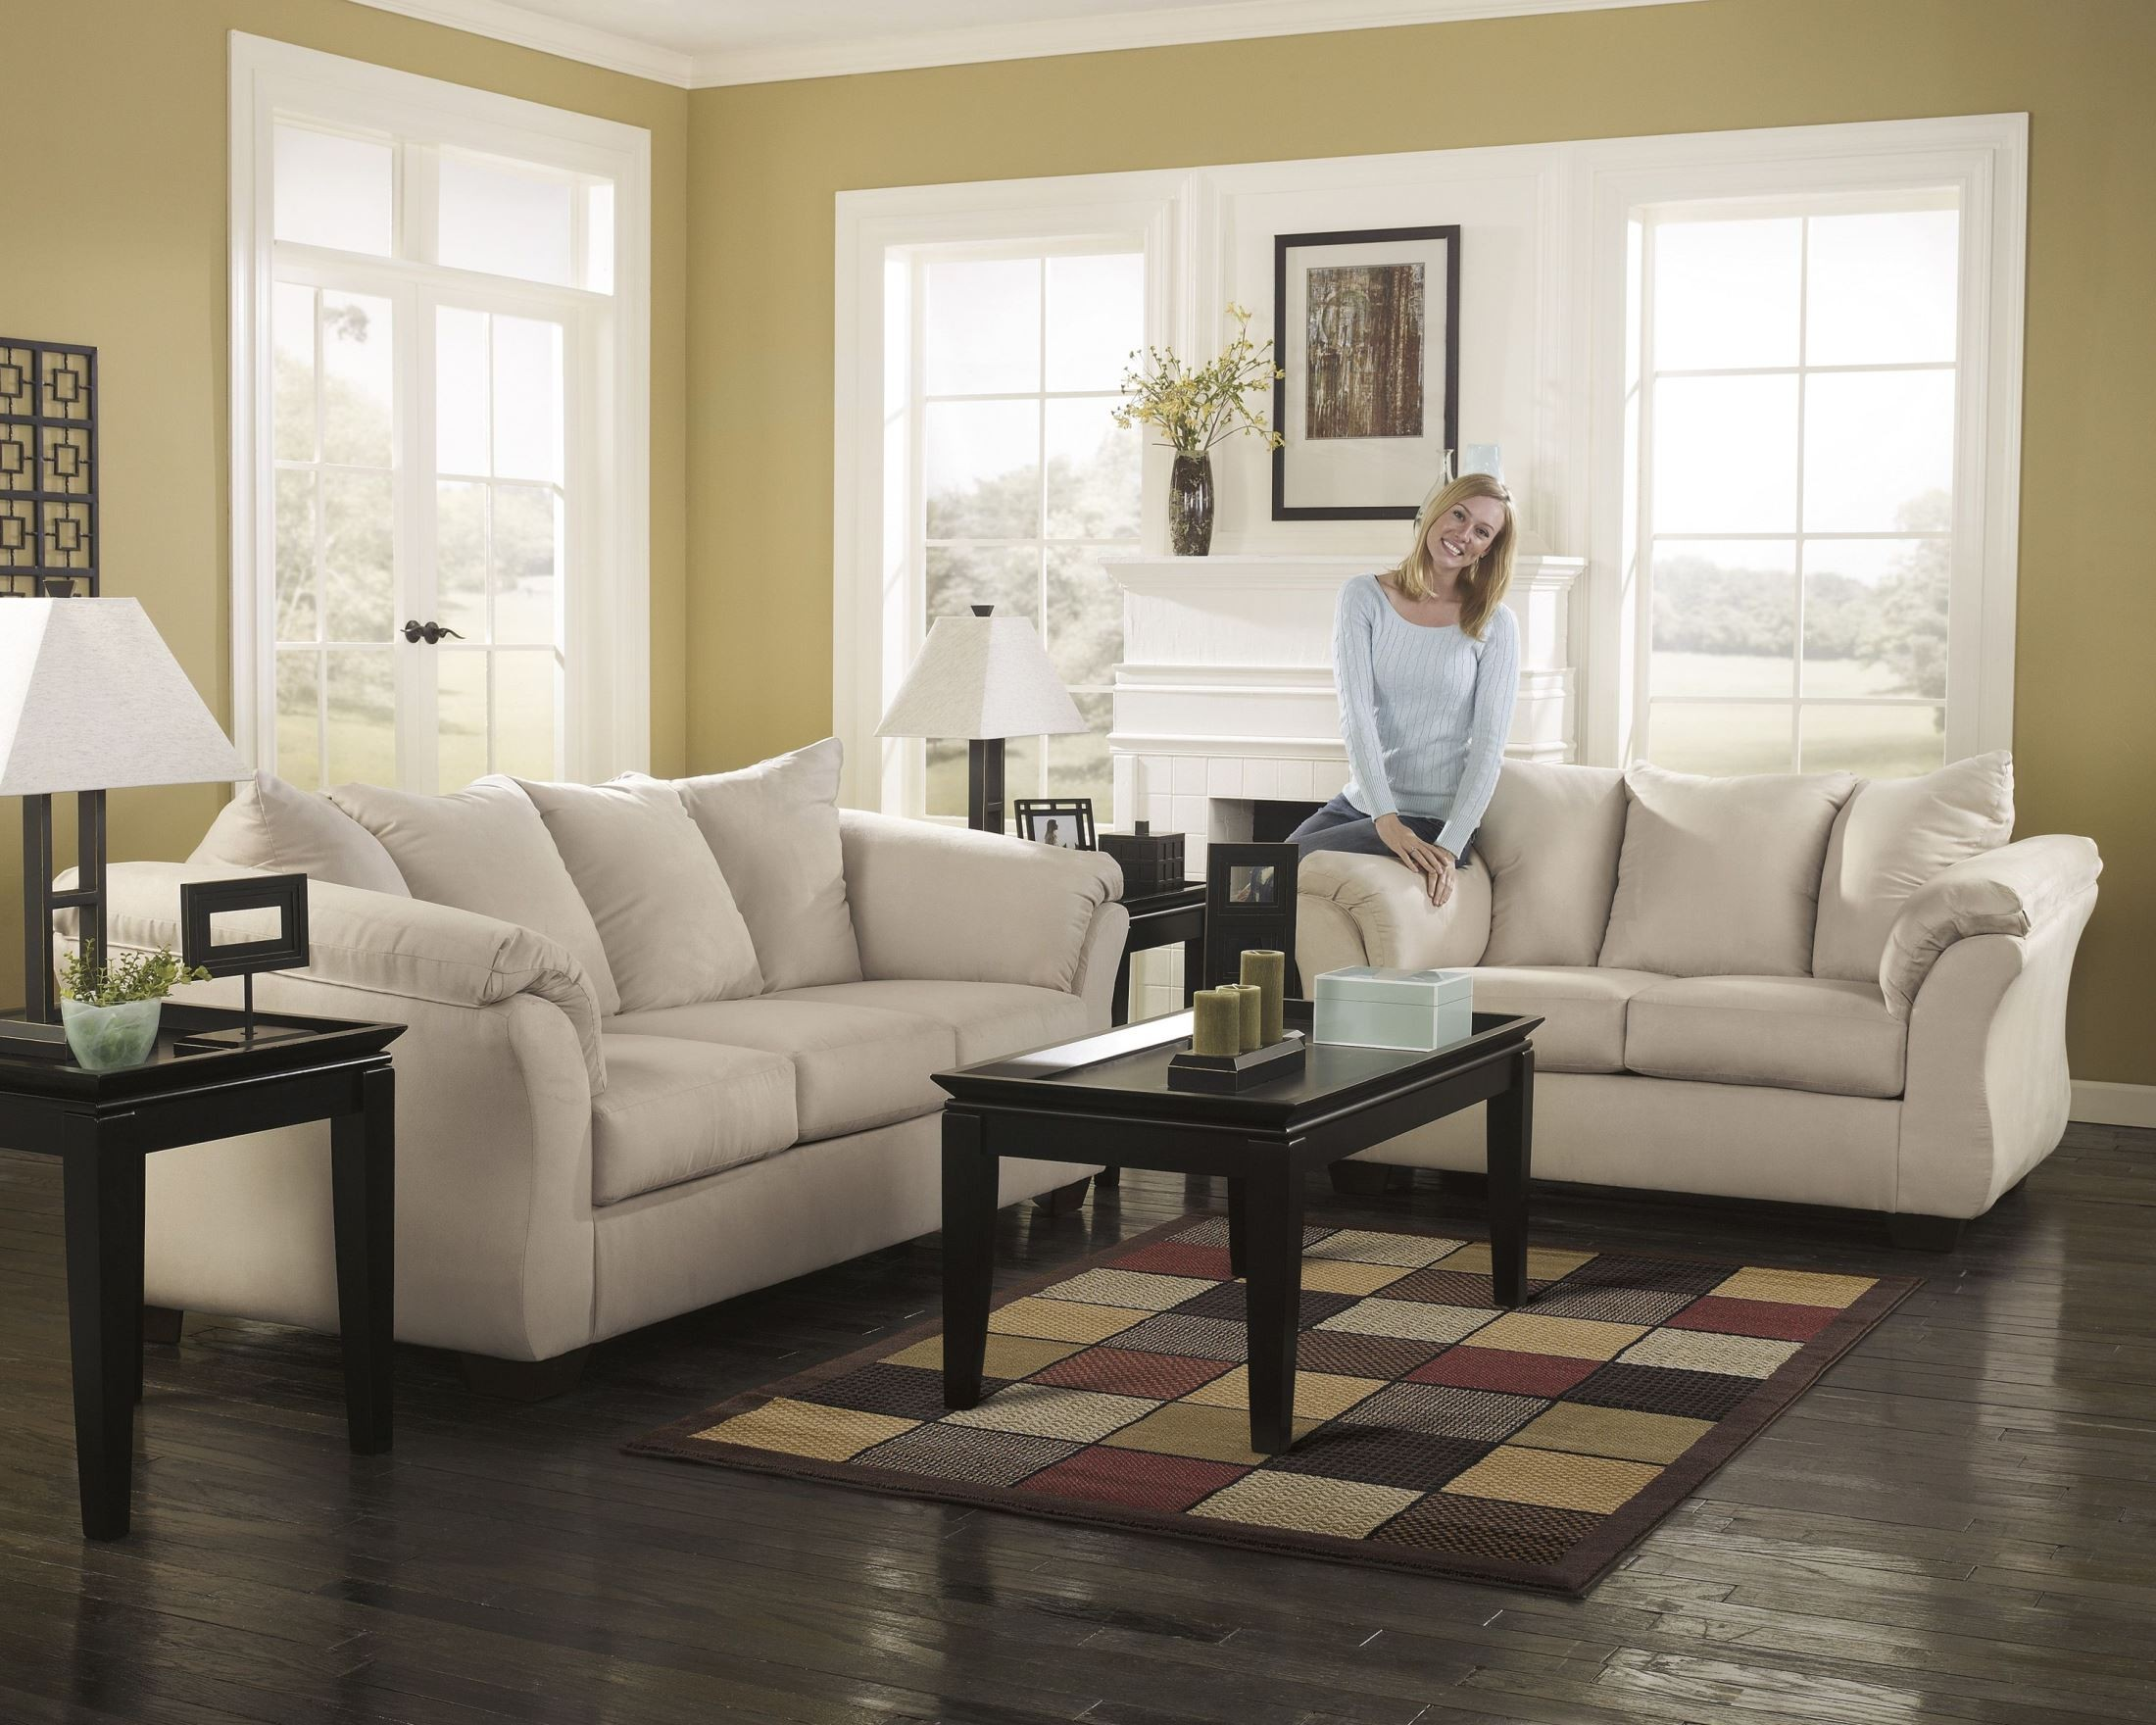 darcy sofa chaise ashley furniture ciak stone sectional from 7500018